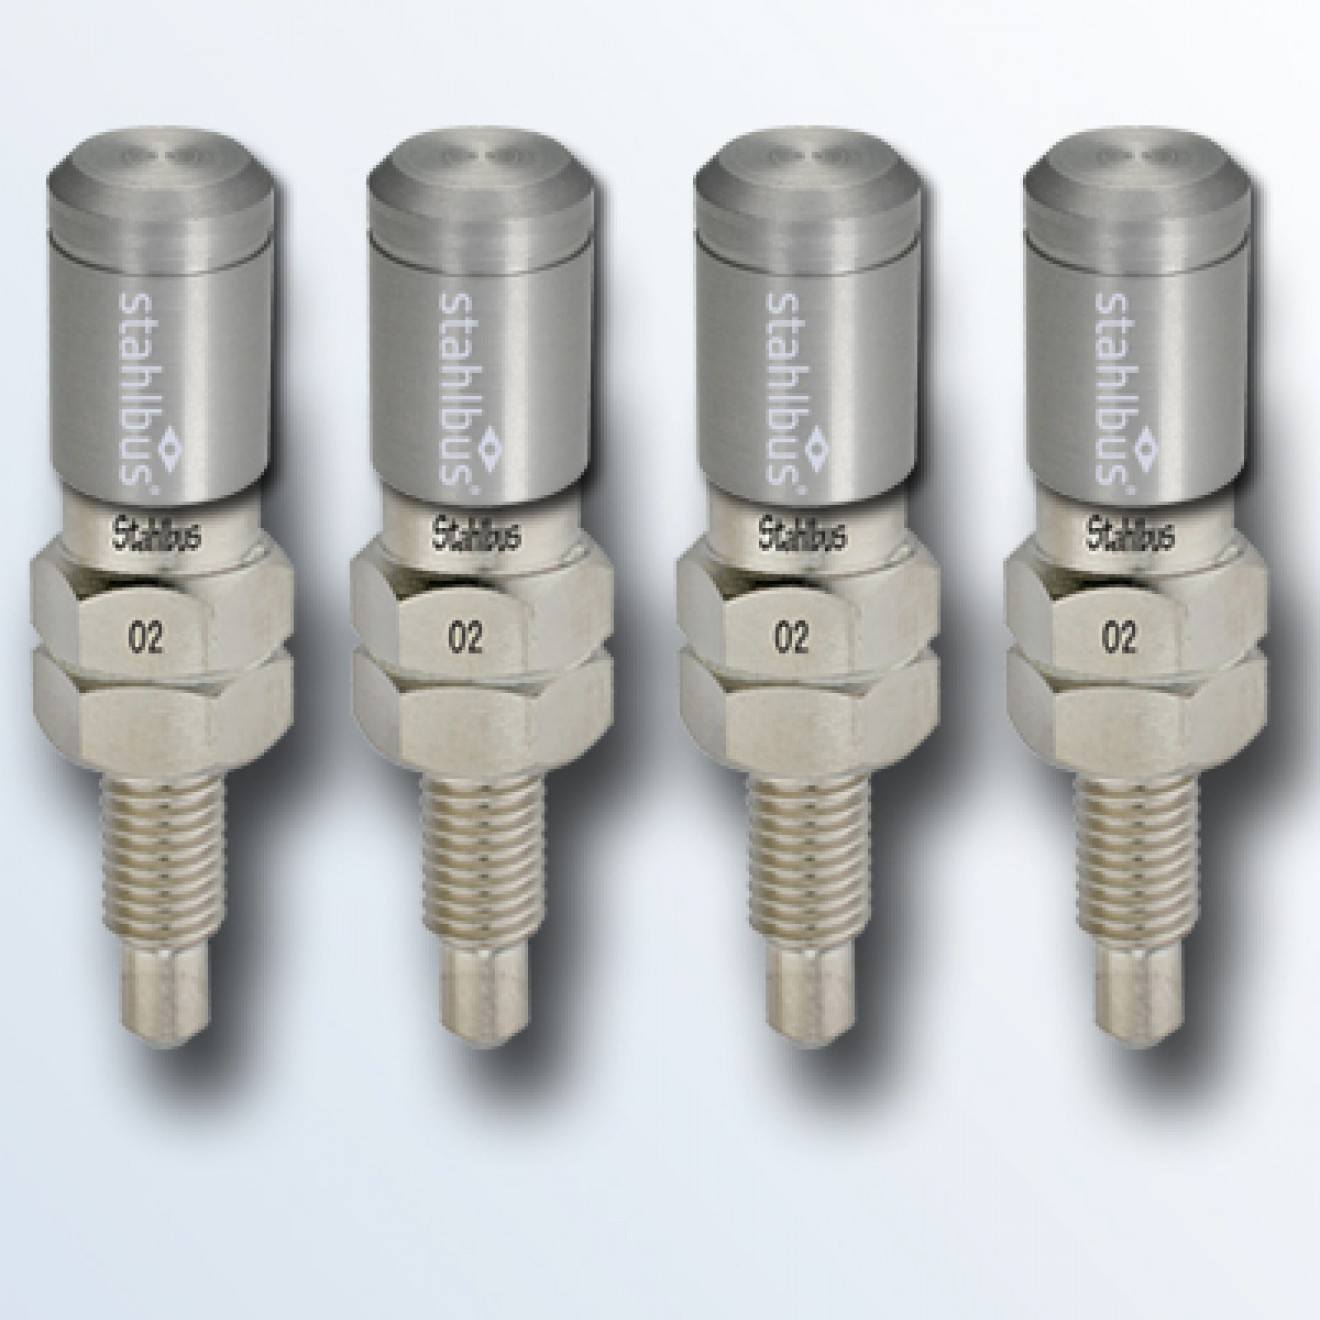 4-piece set stahlbus Bleeder valve 1/4 inches-28UNFx16mm, steel with natural dust cap